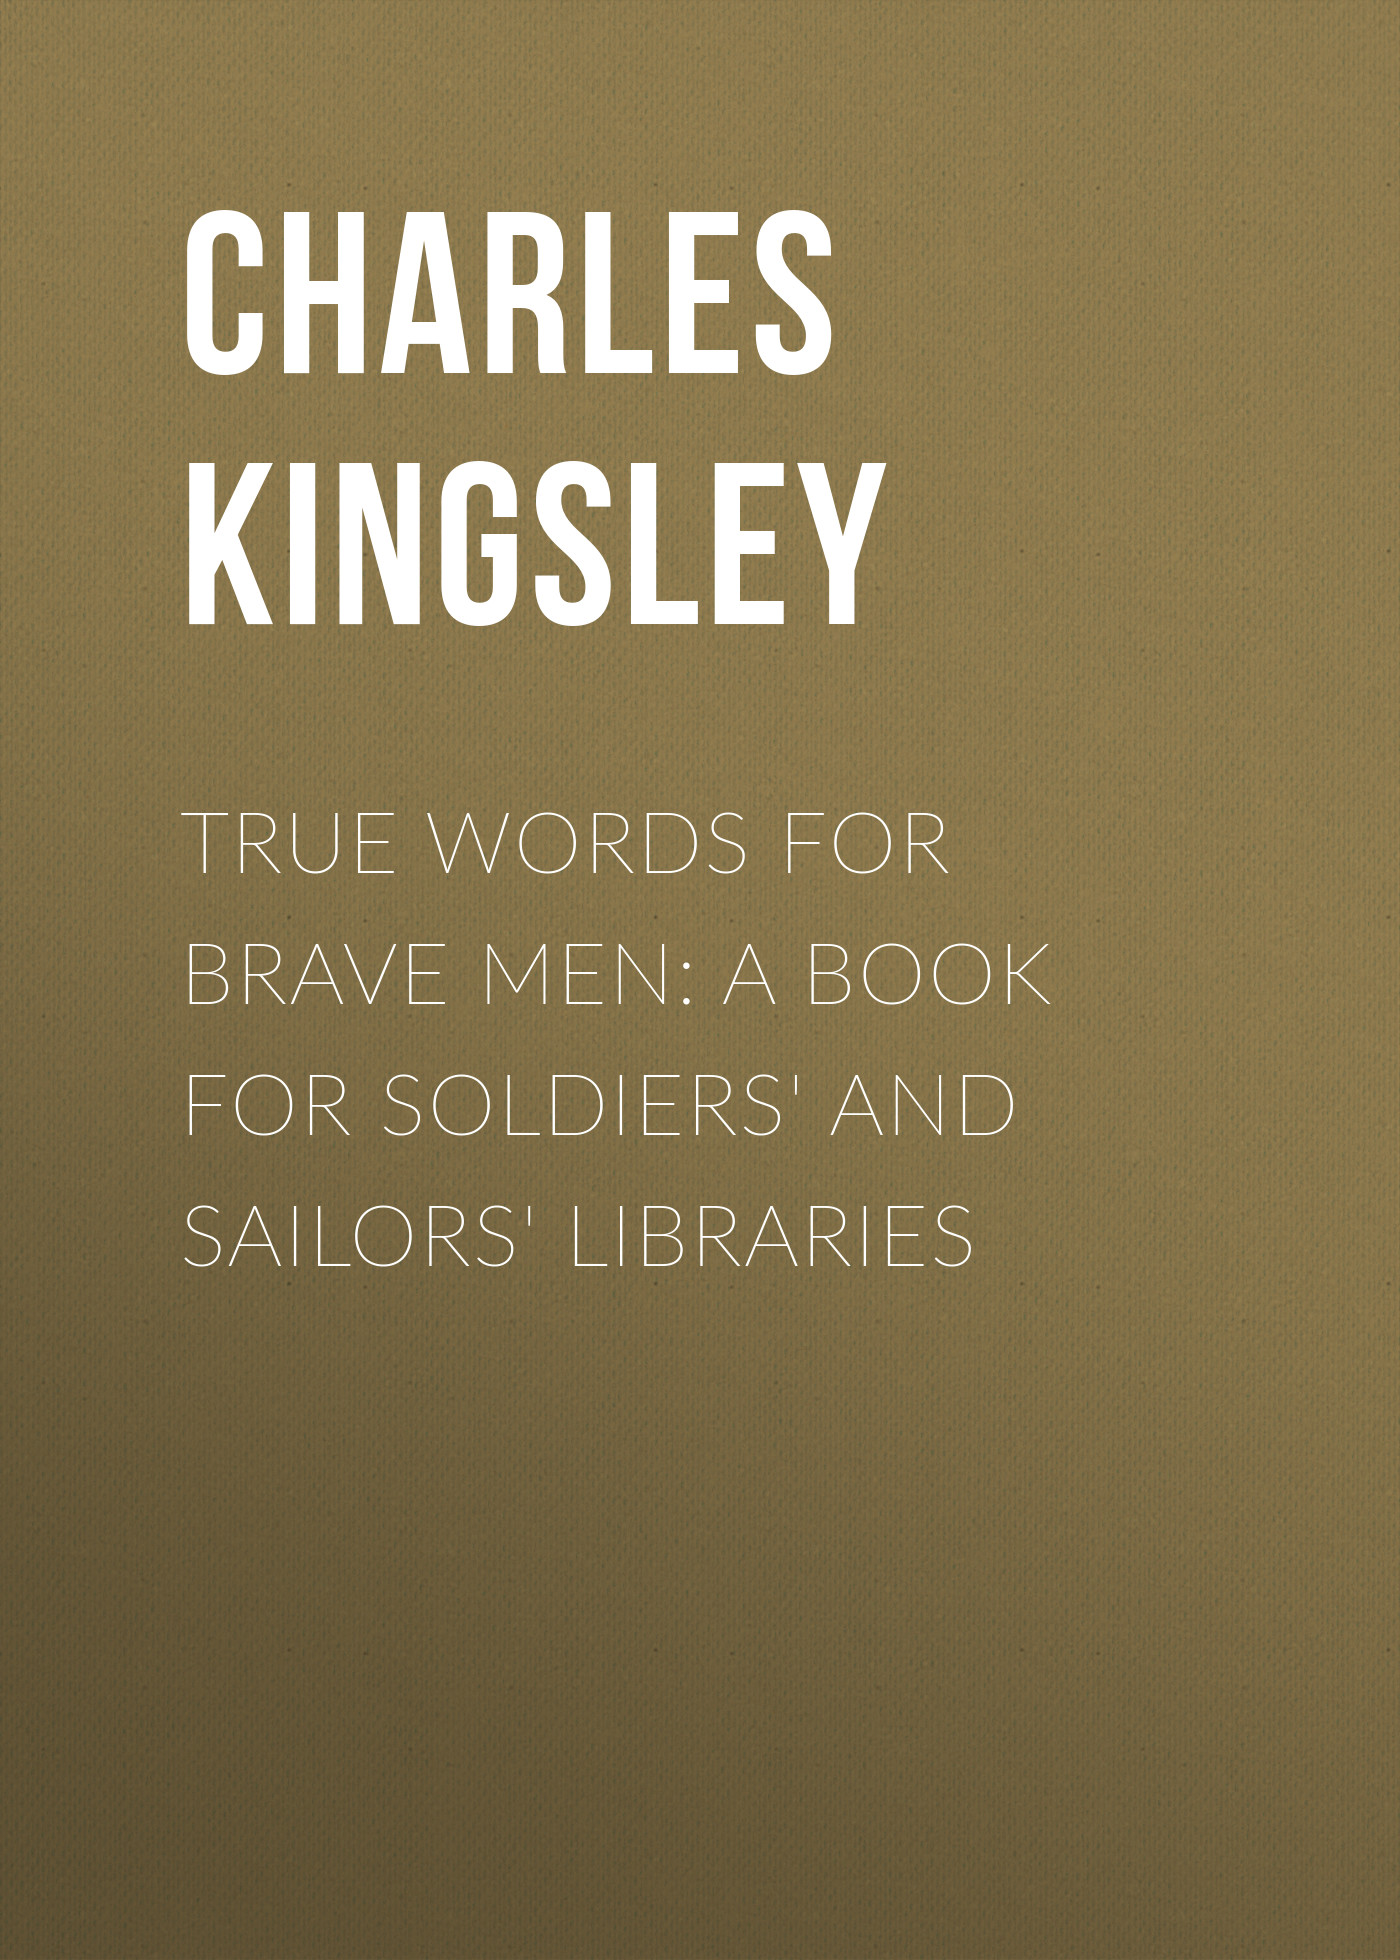 Charles Kingsley True Words for Brave Men: A Book for Soldiers' and Sailors' Libraries gone for soldiers